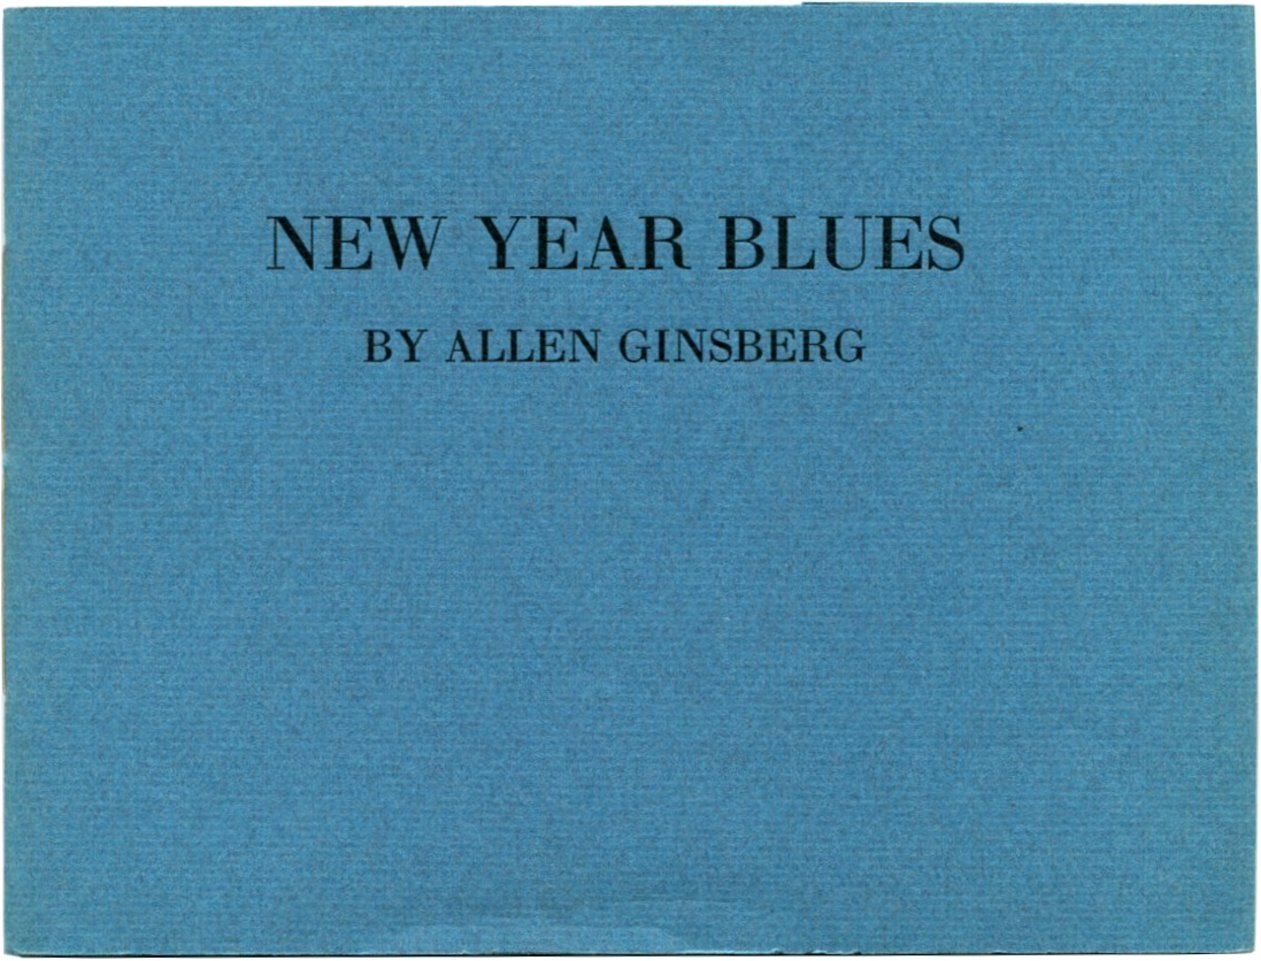 new year blues by allen ginsberg new year blues is contains two works by the poet allen ginsberg christmas blues and macdougal street blues - Christmas Blues Lyrics